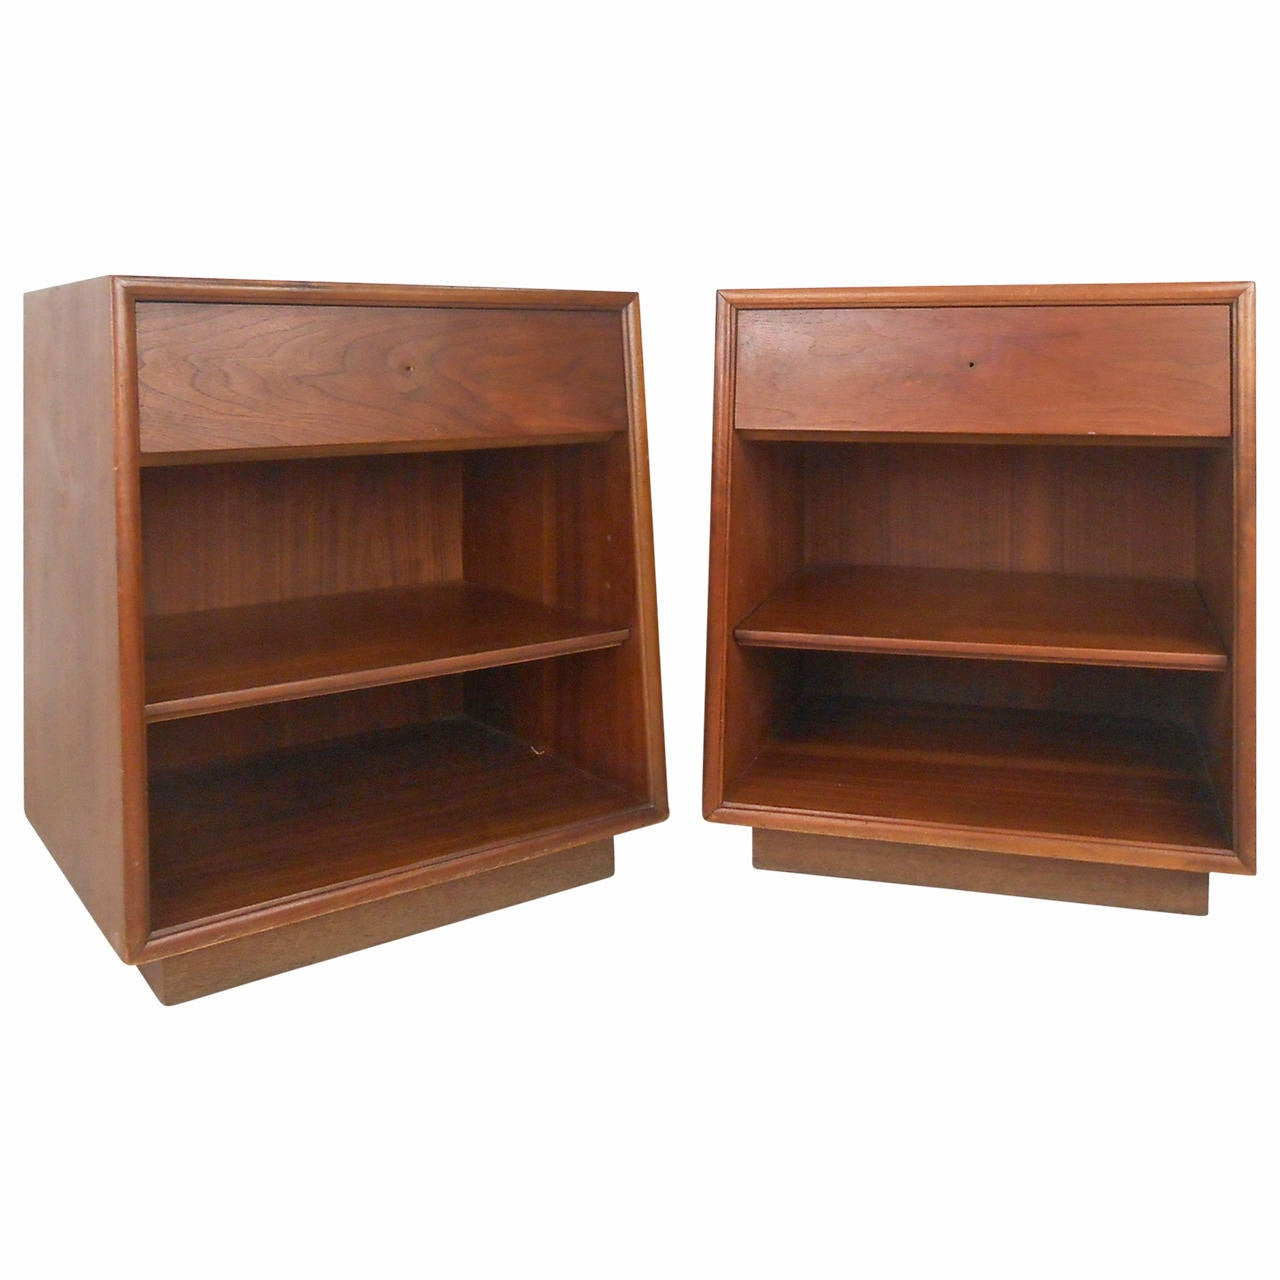 Pair of mid century modern nightstands by drexel for sale for Modern nightstands for sale